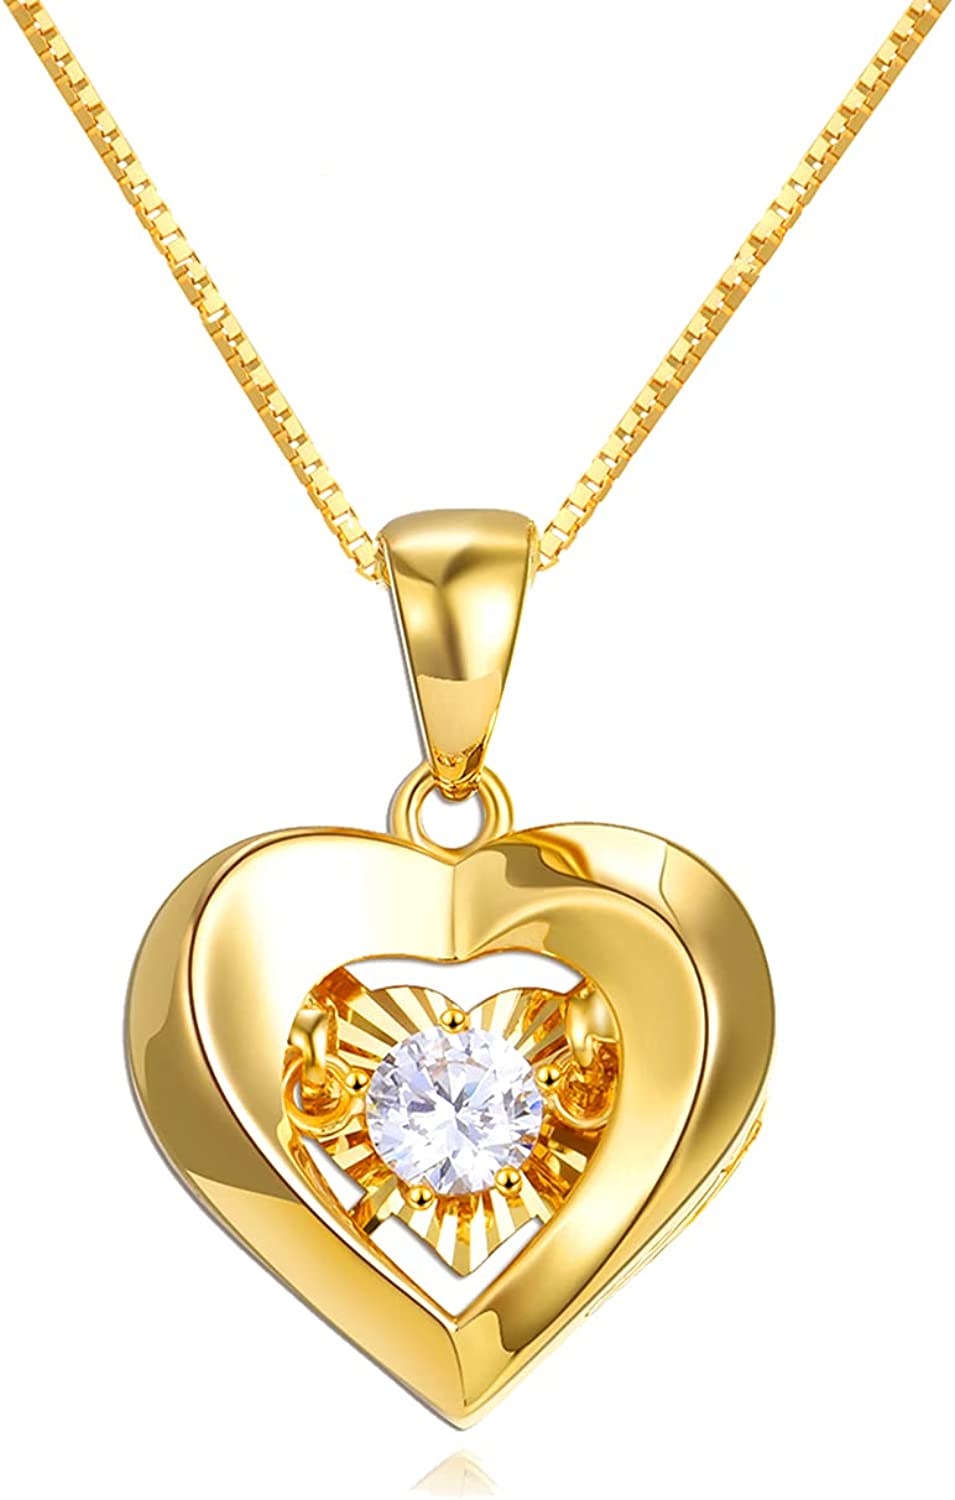 18k Yellow Gold Heart Necklaces for Women, Real Gold Box Chain Love Pendant, Anniversary Jewelry for Wife, Birthday Present for Mother, Gifts for Her, 18 Inch